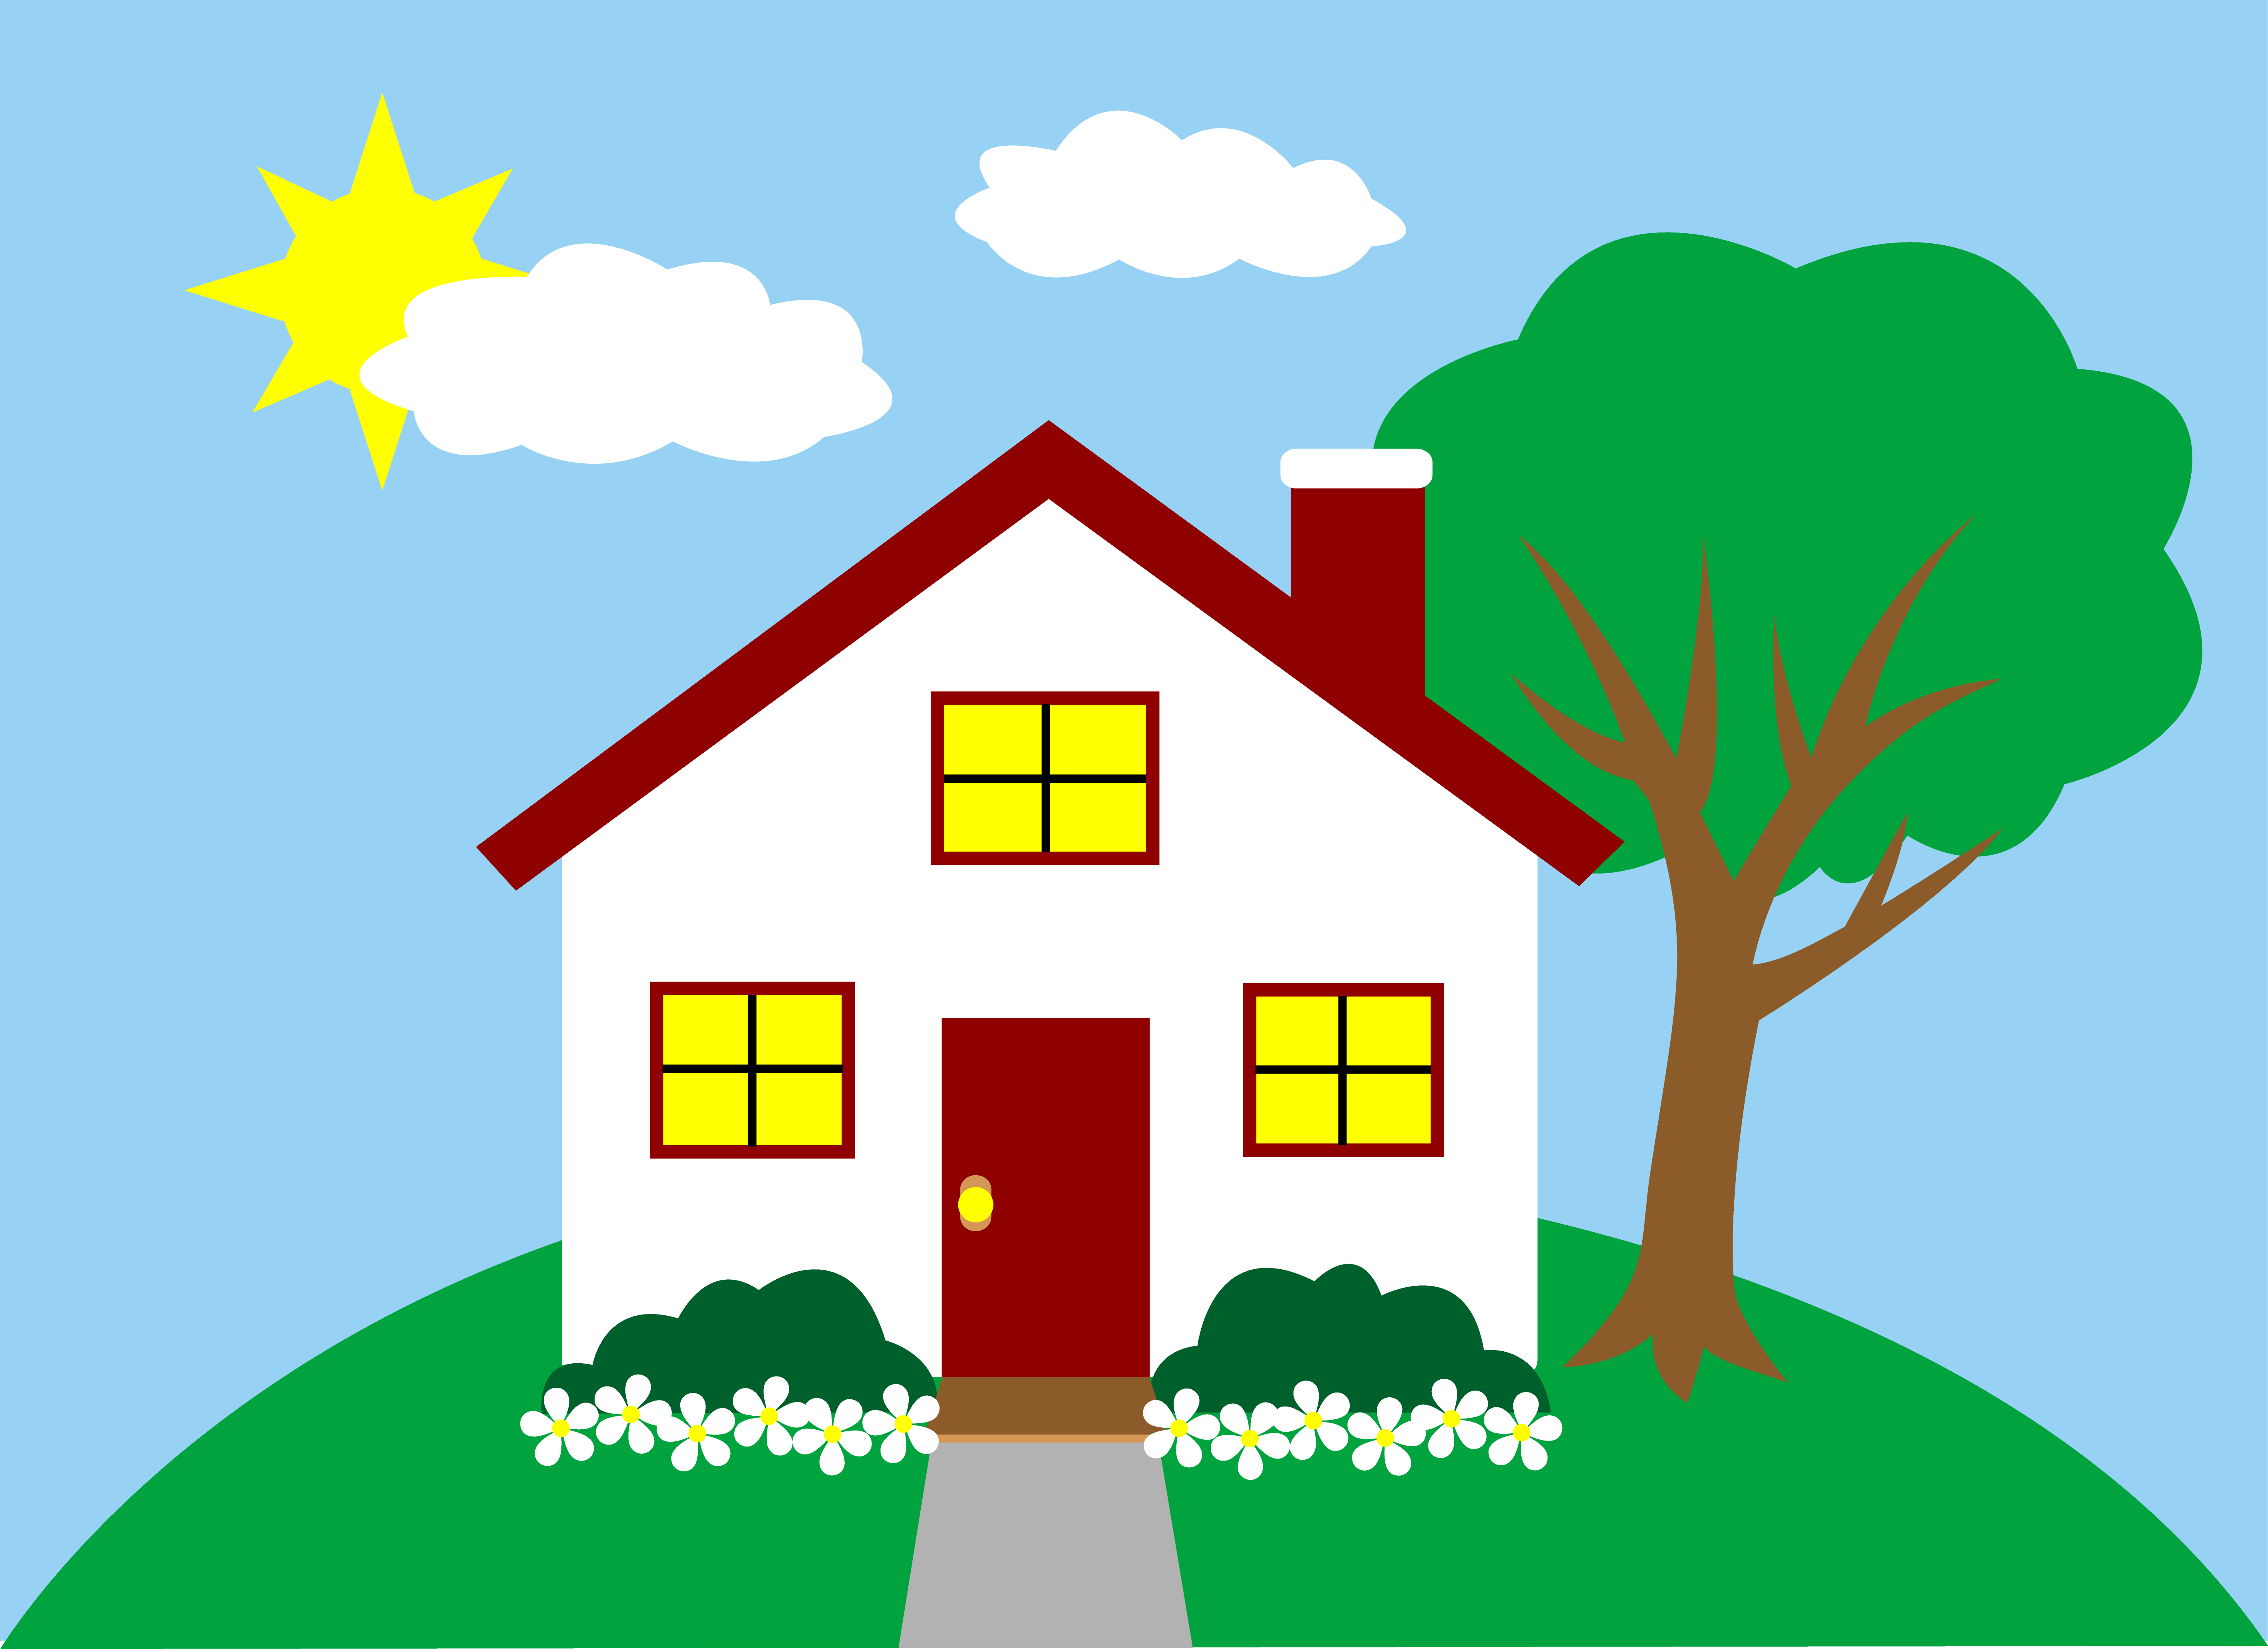 House clipart #1, Download drawings